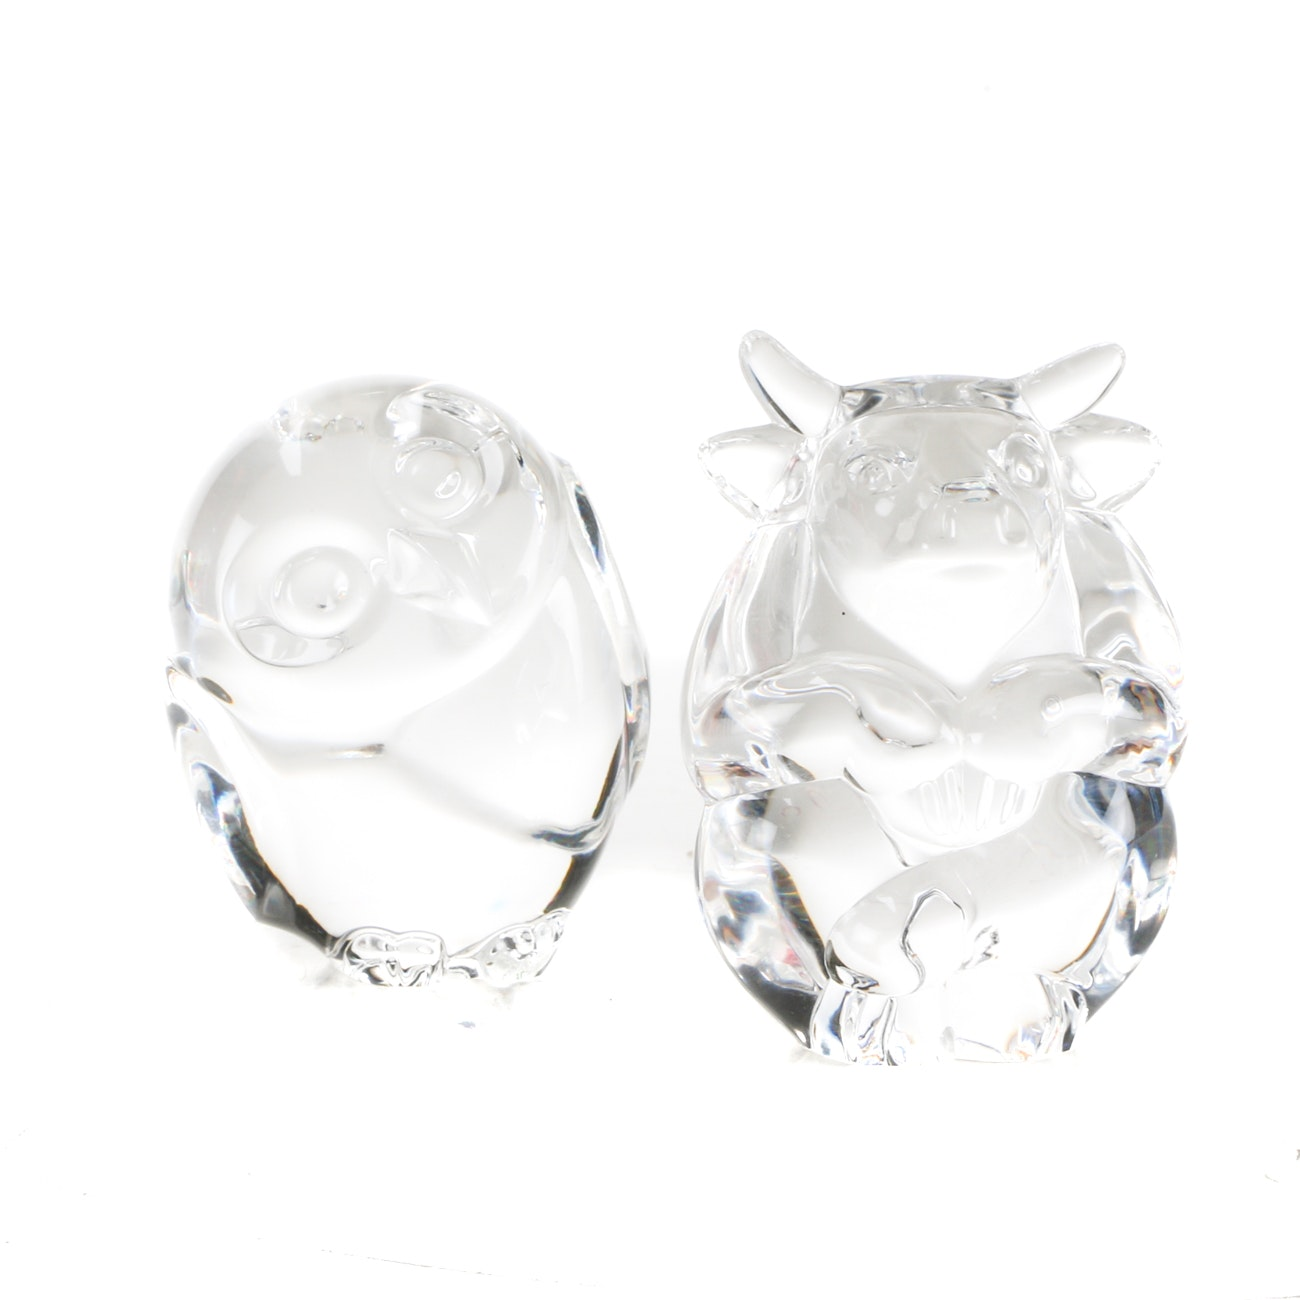 Steuben Glass Bull and Owl Hand Coolers